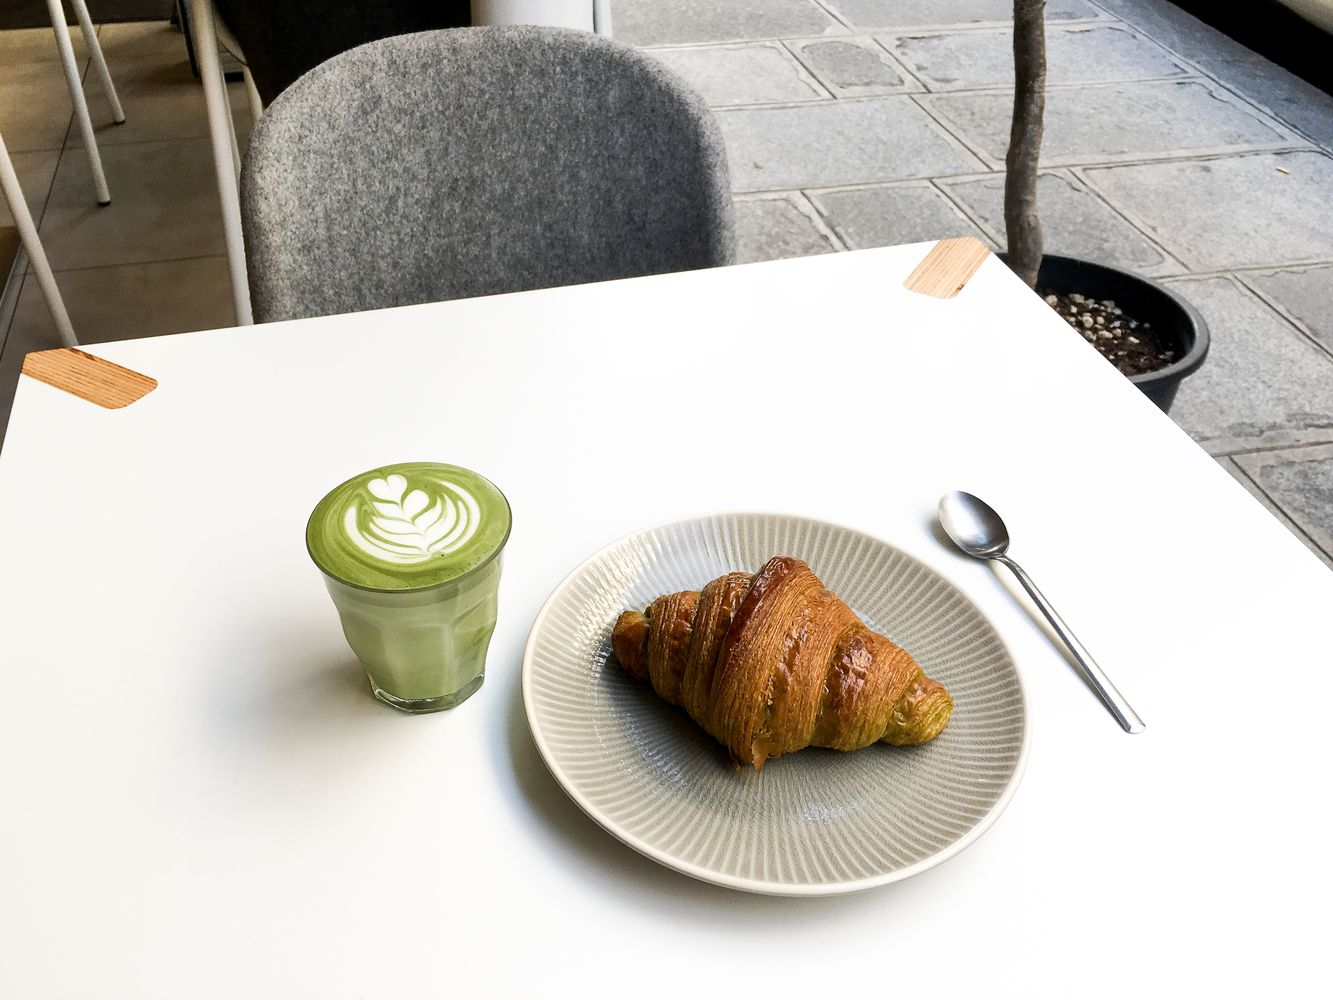 Matcha tea latte in Paris